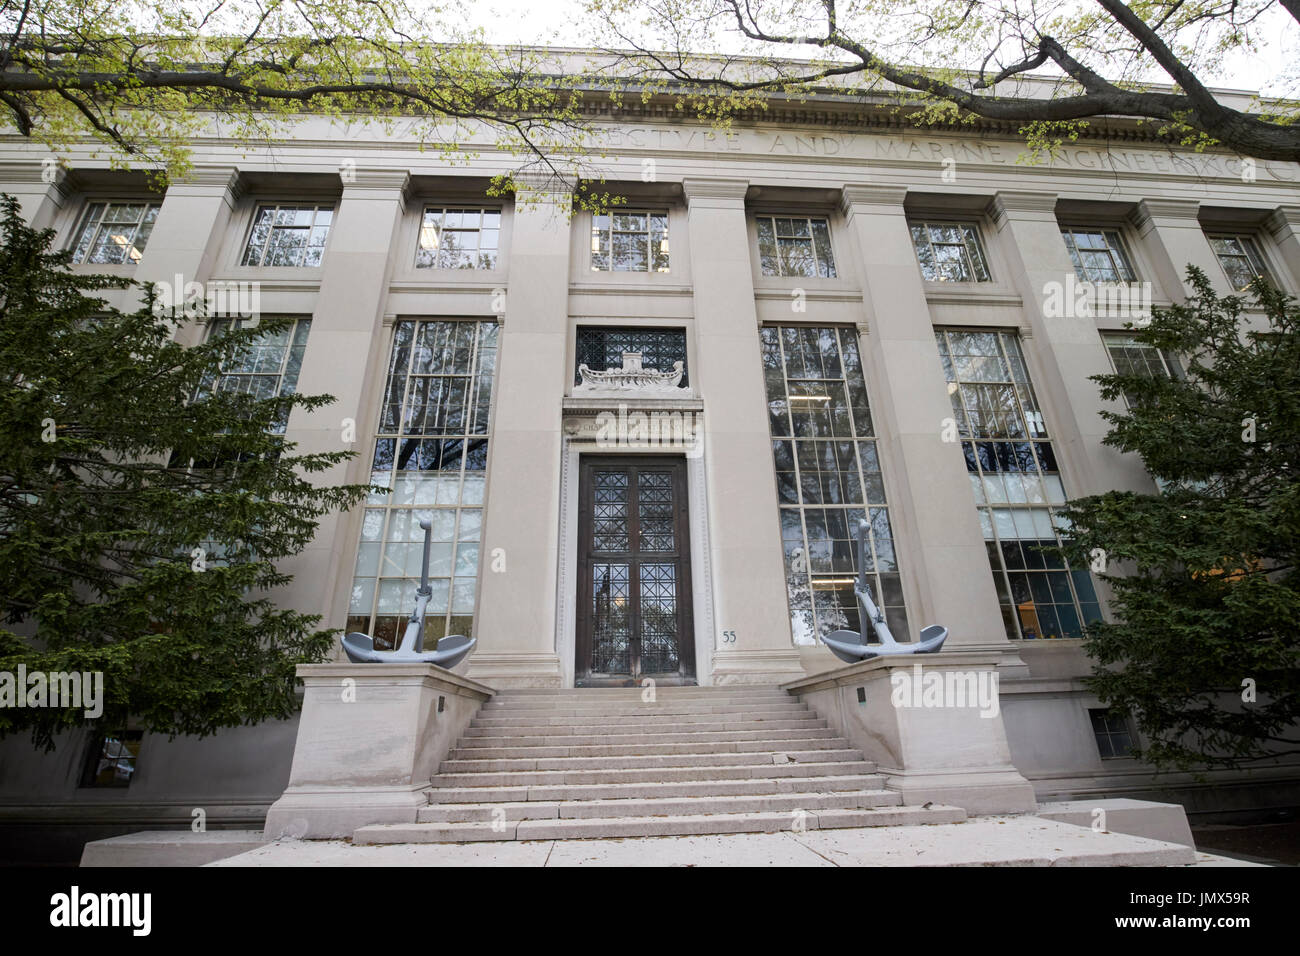 Pratt School Of Naval Architecture And Marine Engineering MIT Massachusetts Institute Technology Boston USA